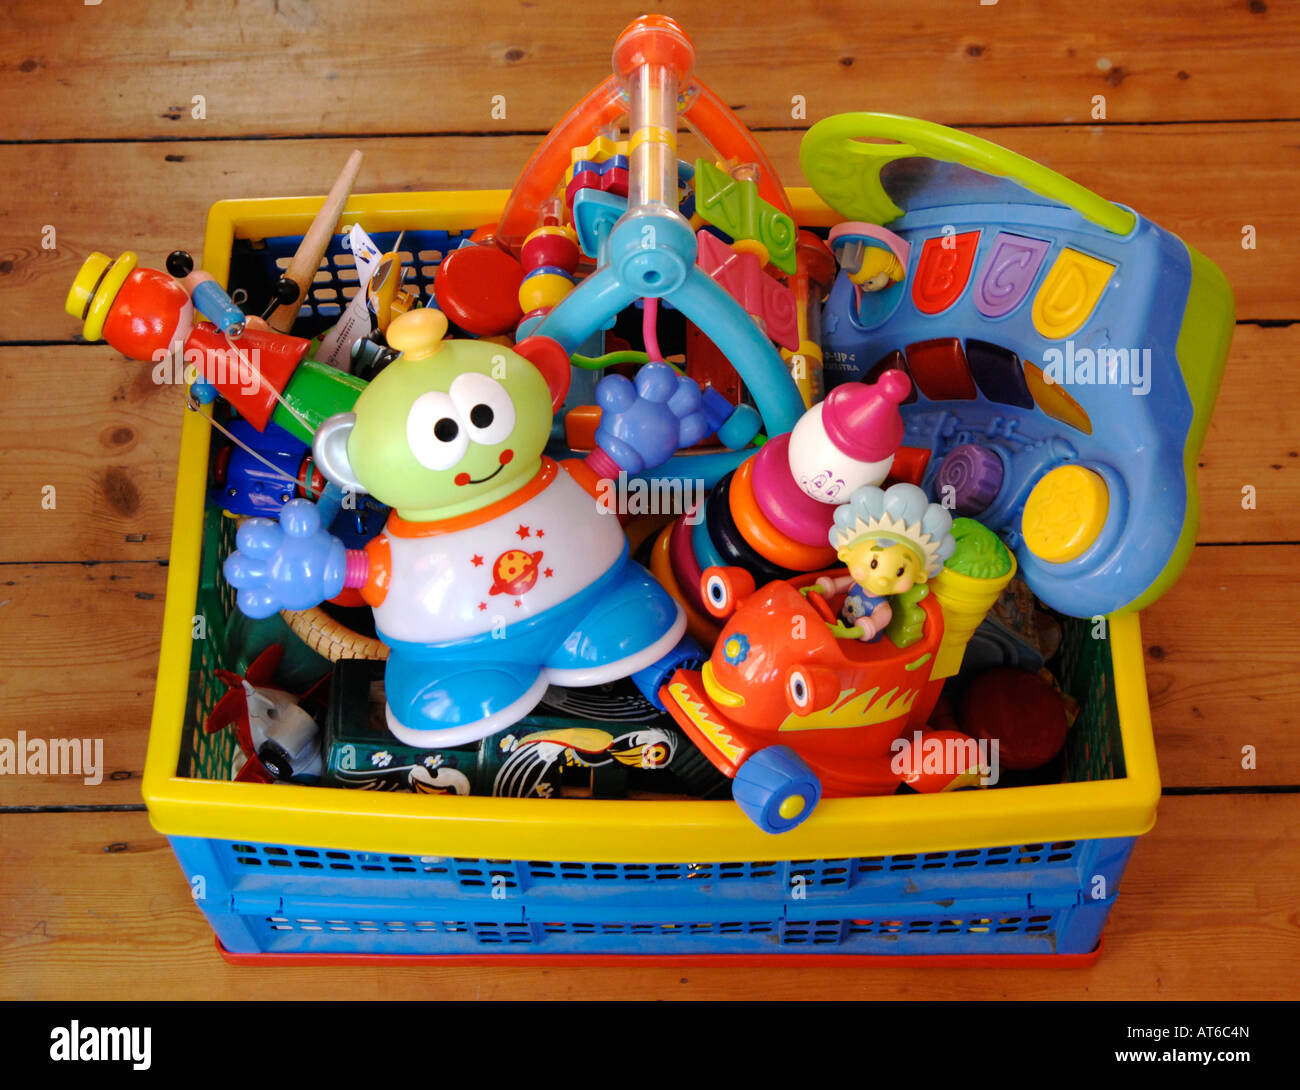 Crate of colourful plastic children's toys - Stock Image